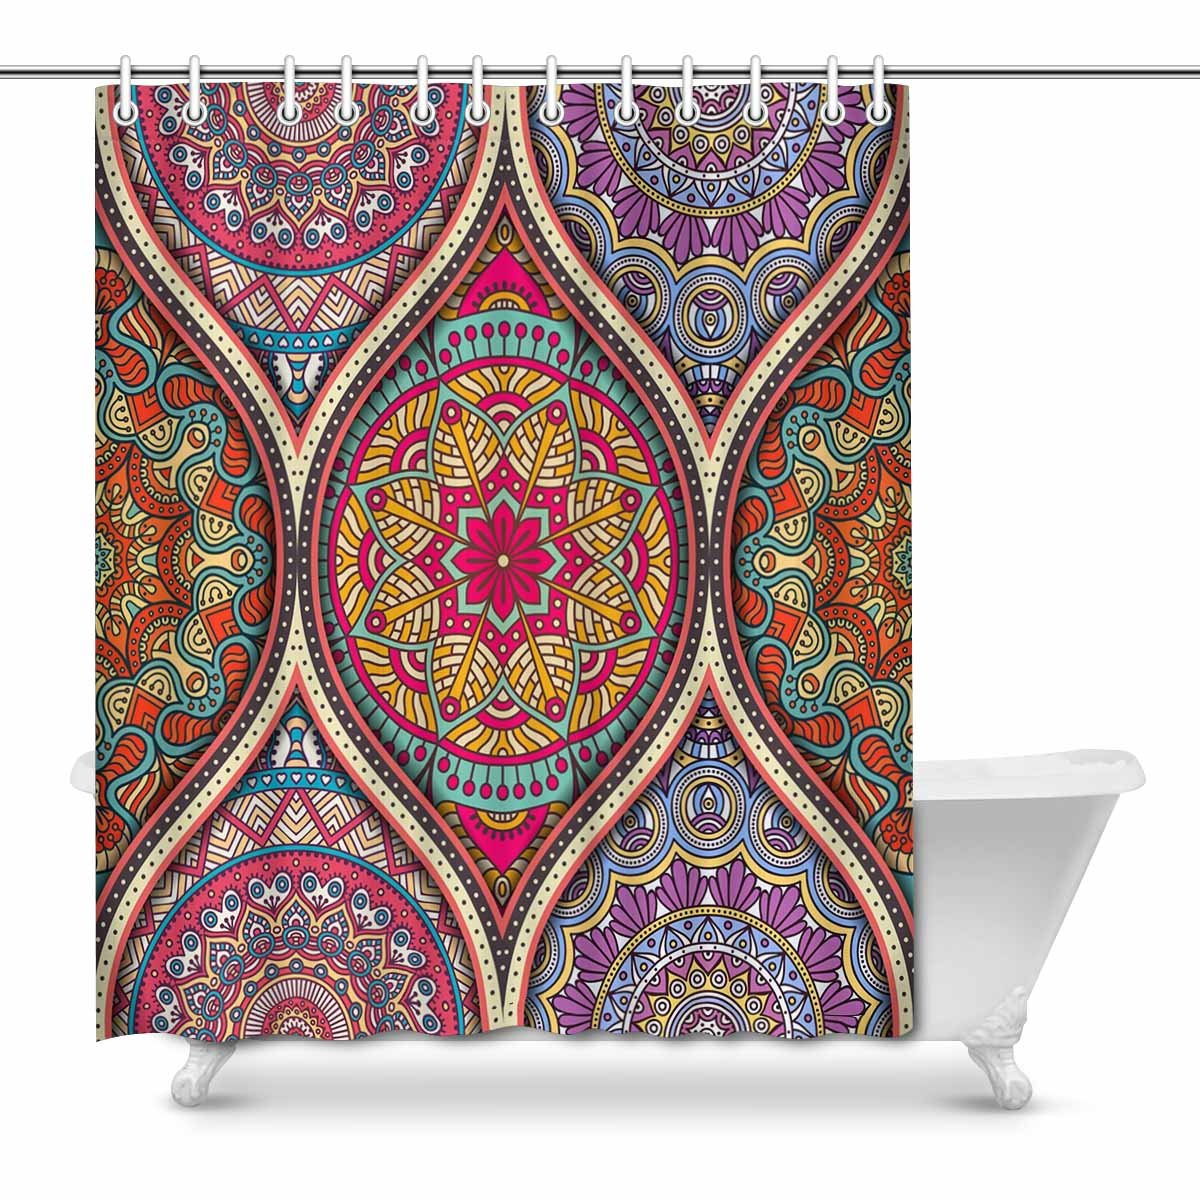 Pop Pattern Tile With Mandalas Country For Bathroom Shower Curtain 66x72 Inch